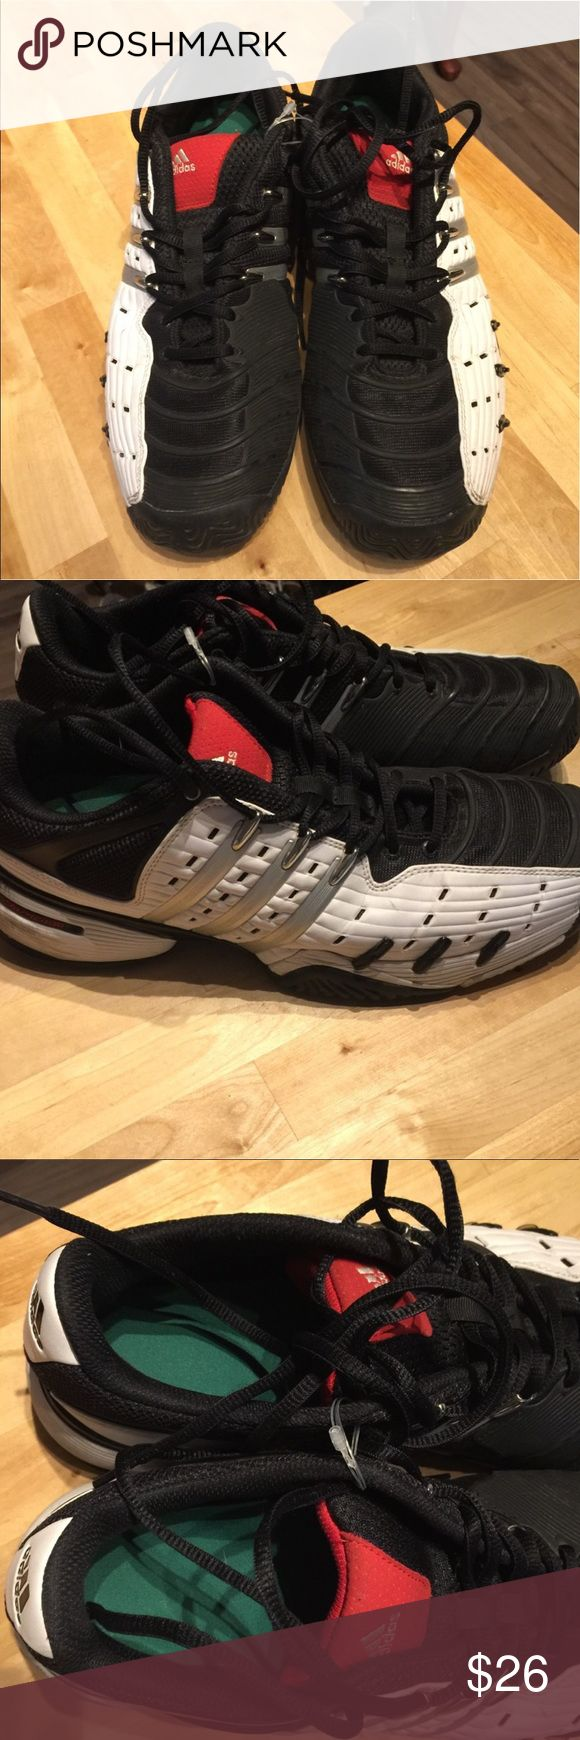 Adidas barricade like new Like New like New like New and looks so nice ! adidas Shoes Sneakers